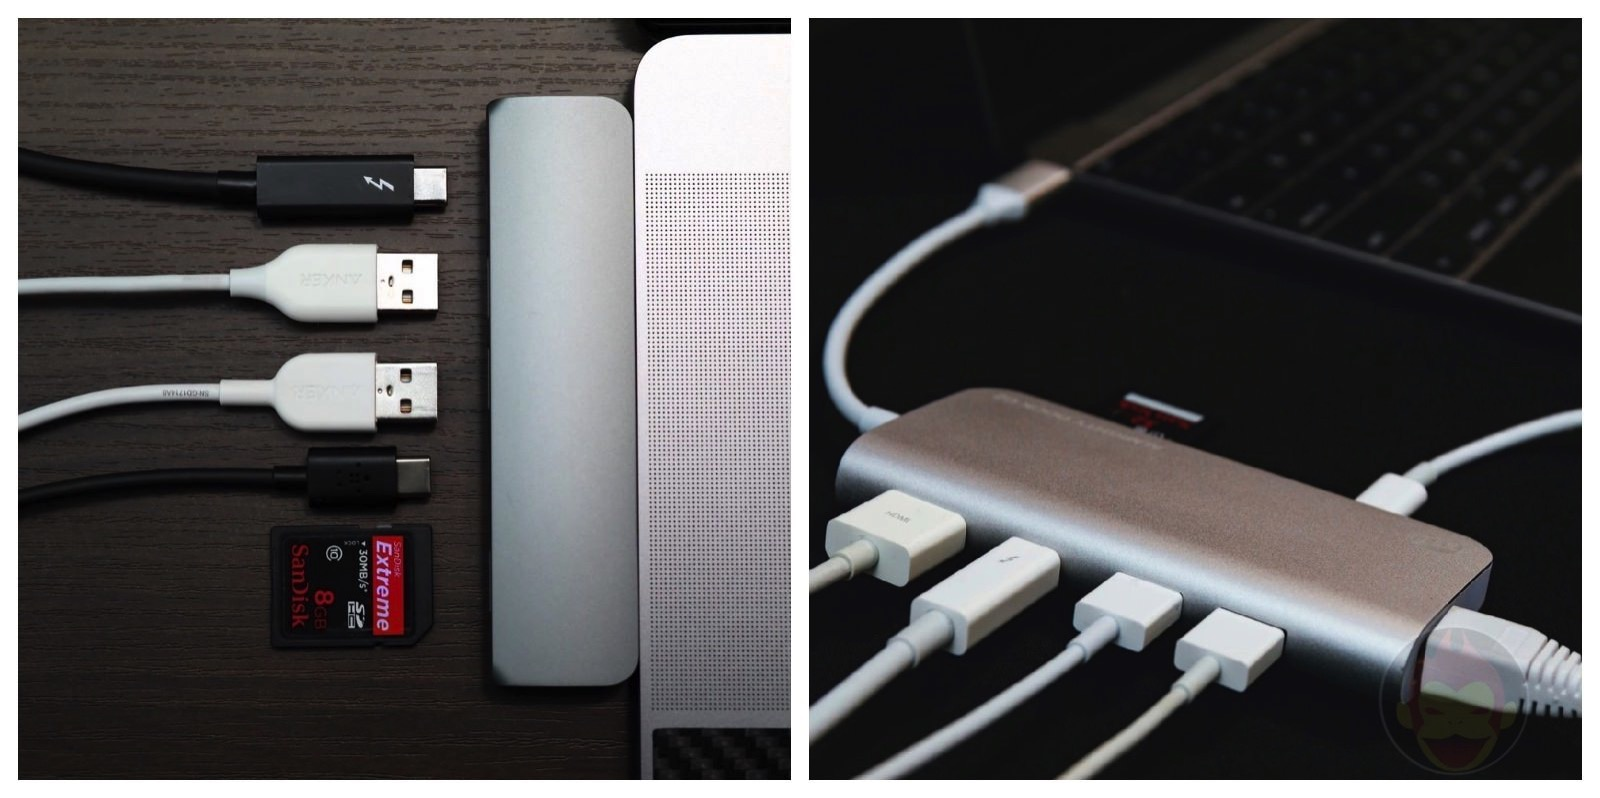 MacBookPro USB C Hub or Dongle